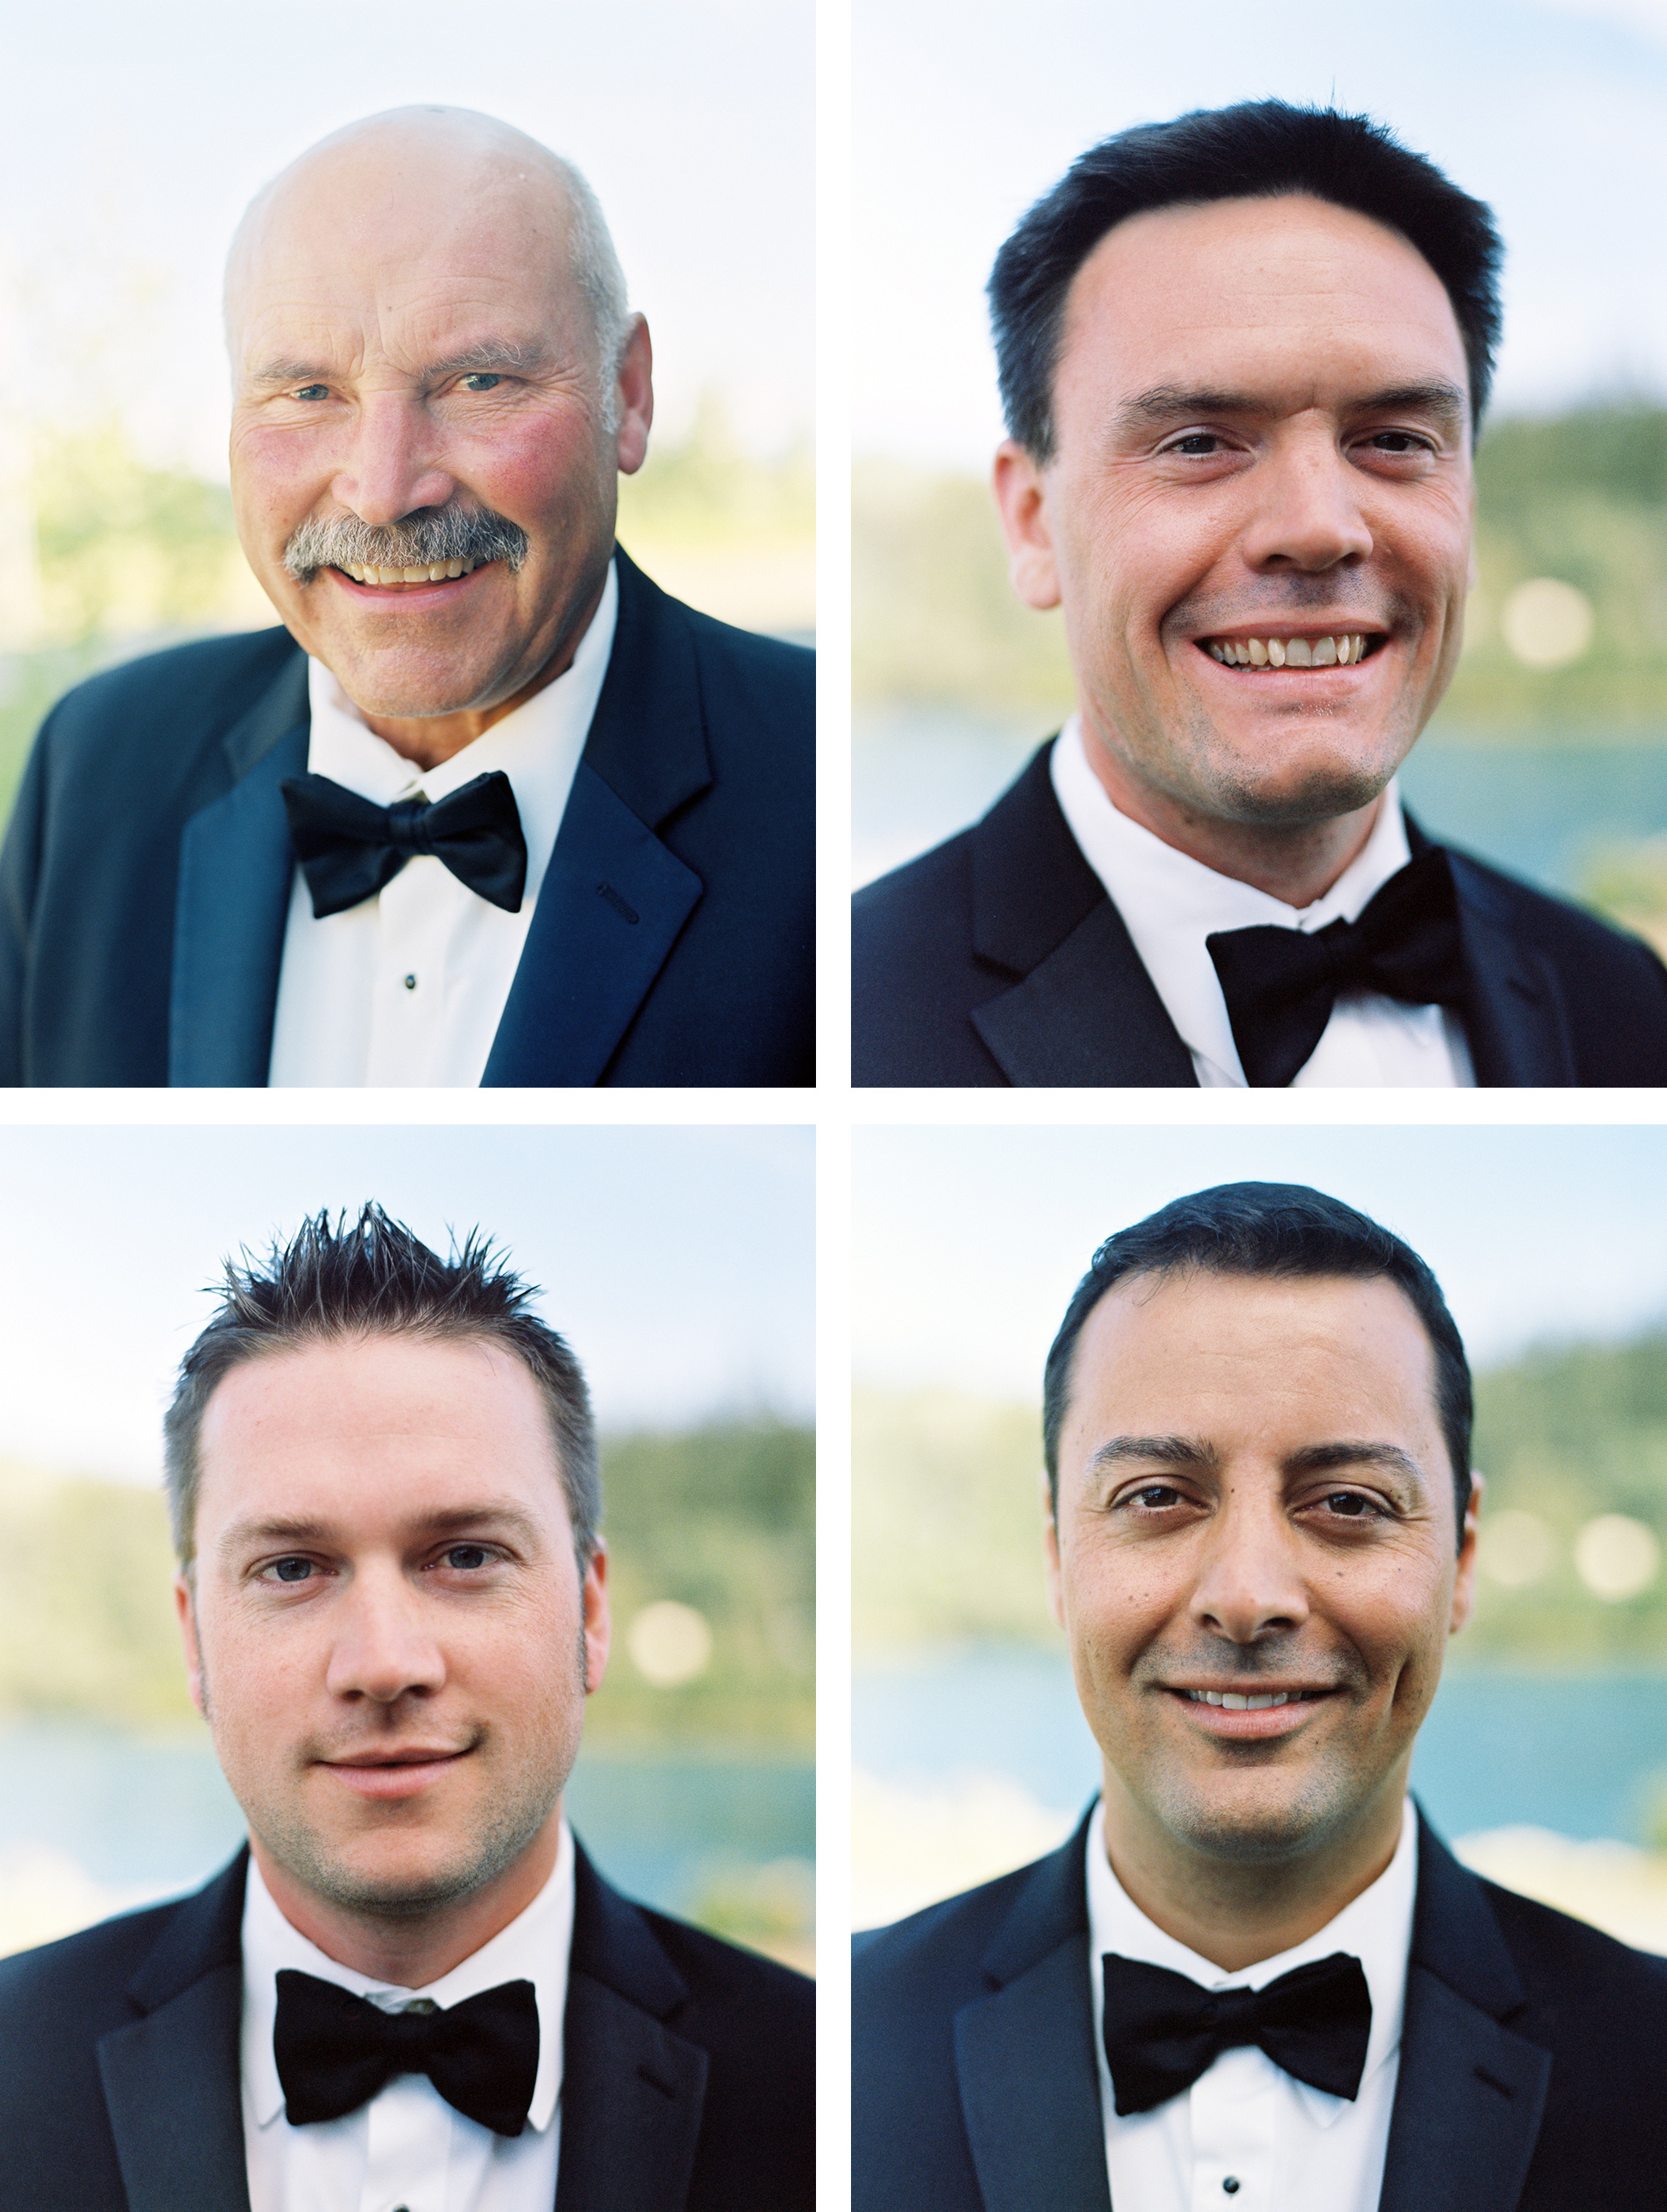 Portraits of groomsmen and brides father